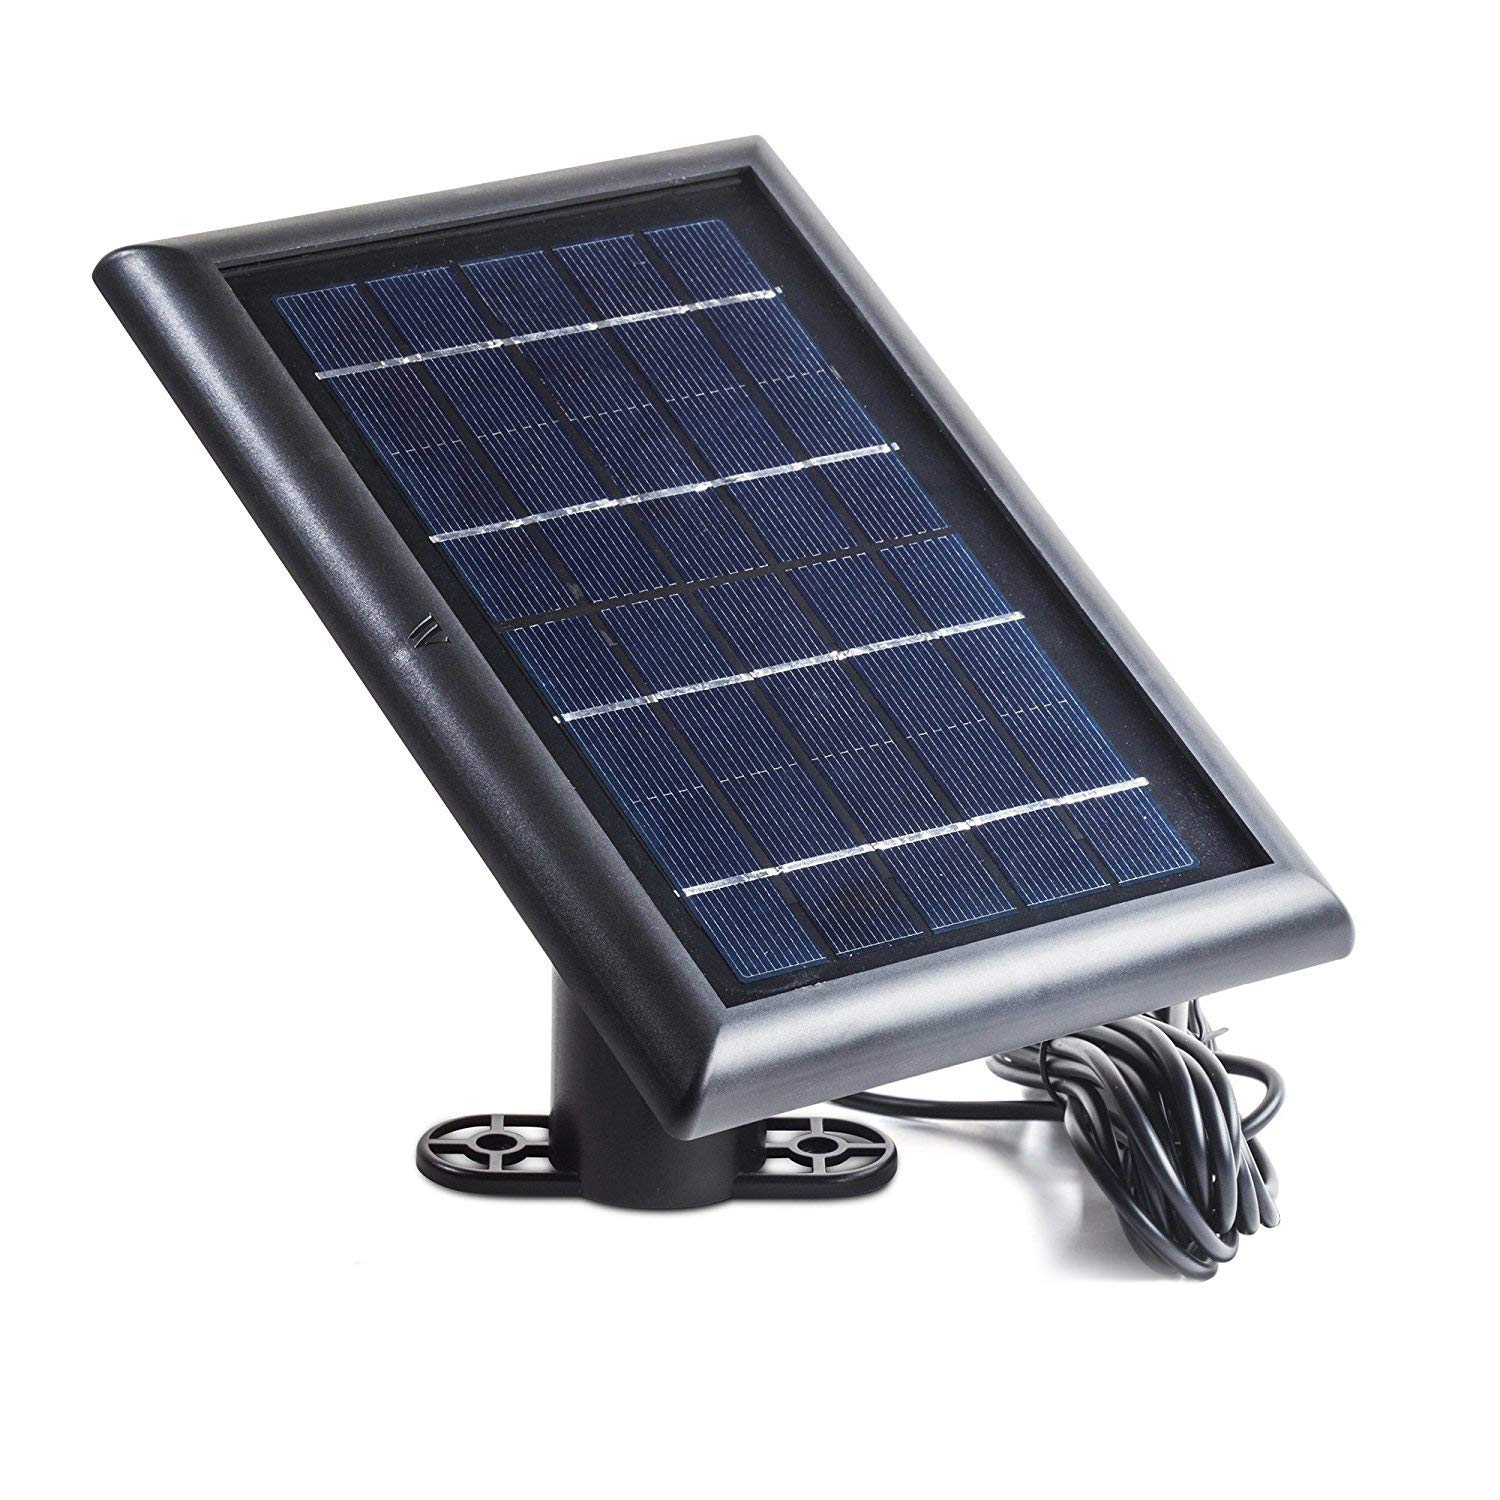 Solar Panel Compatible with Arlo Ultra - Power Your Arlo Surveillance Camera continuously (Black) by Wasserstein (Image #4)